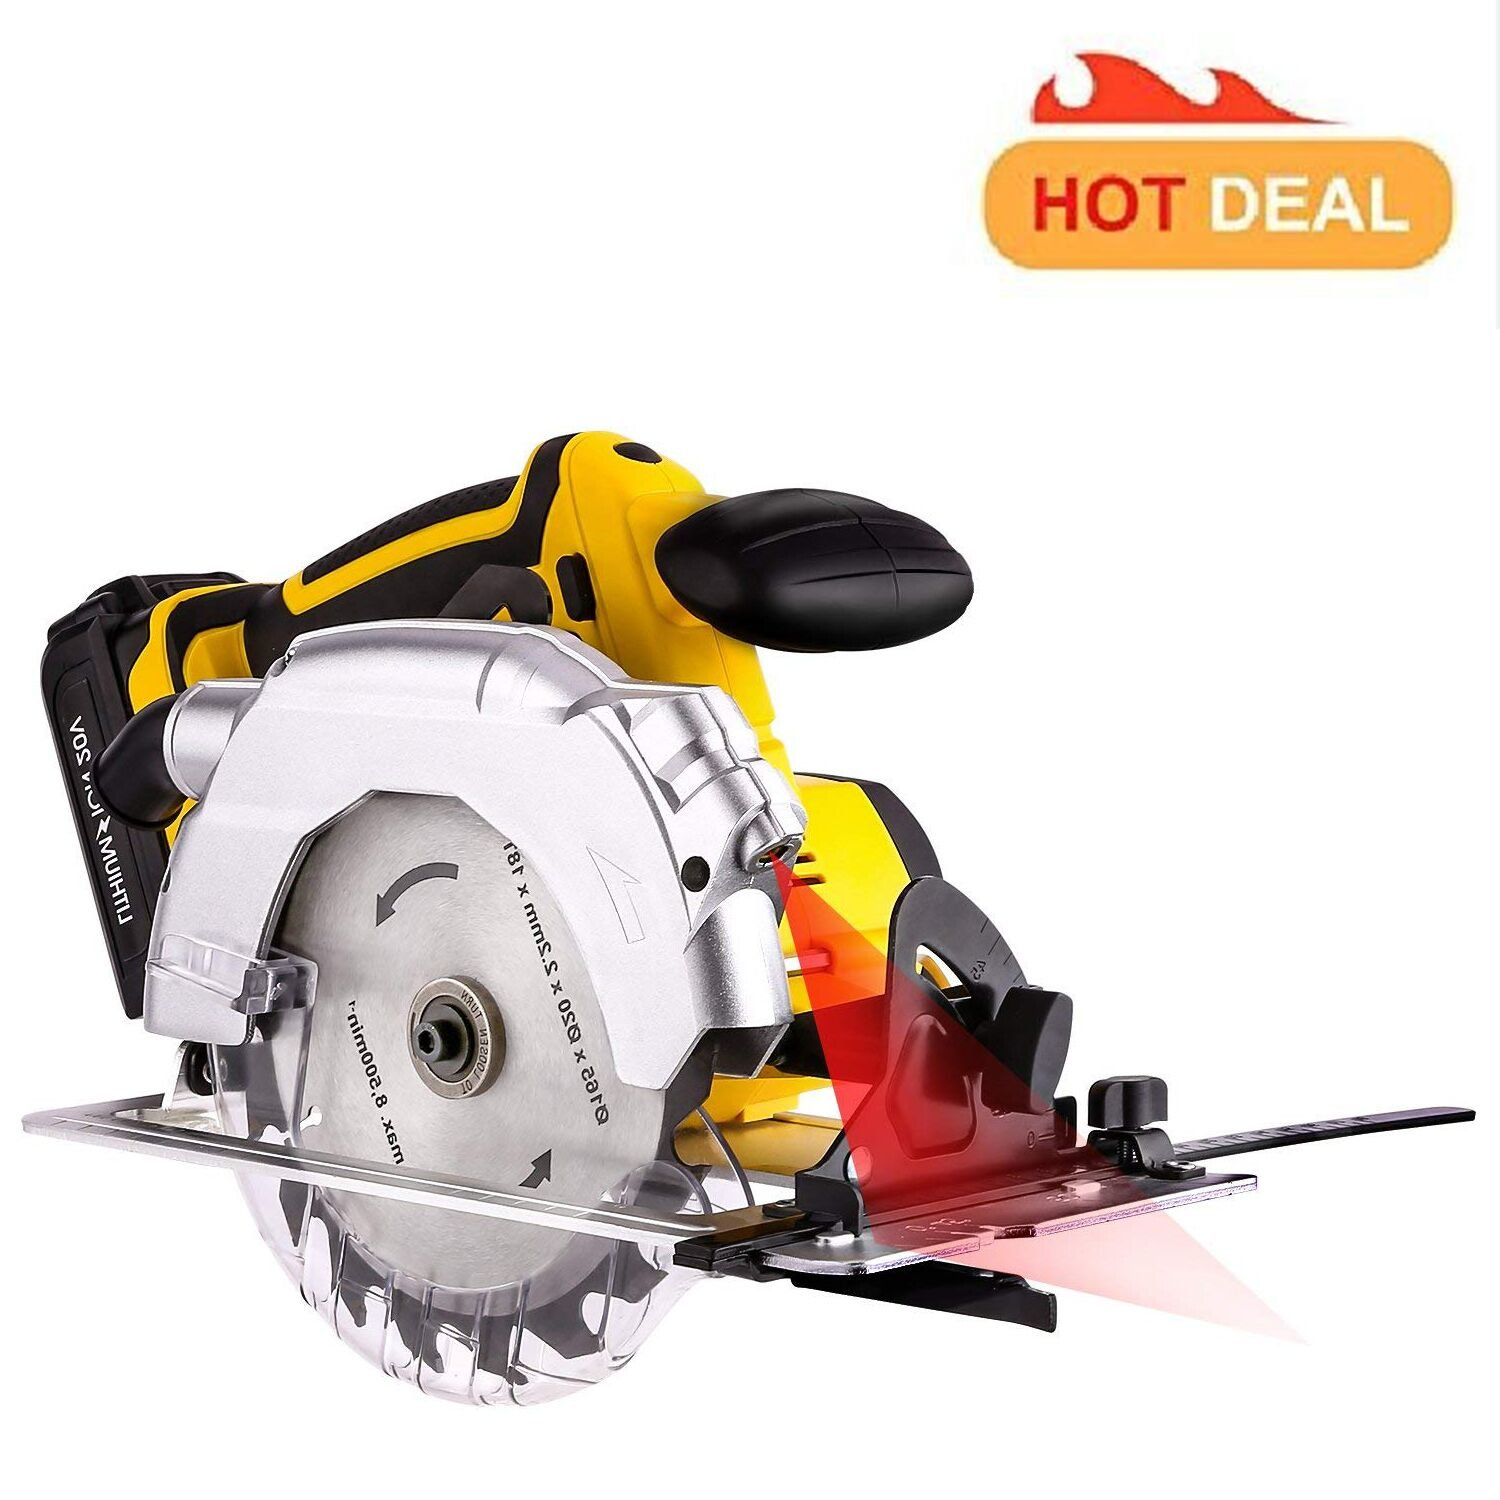 165mm Wood Cutting Tools Electric Hand Circular Saw, 7000rpm Max Speed Rating Saw Blade with Lightweight Safety Guard, Guide Ruler, 2000mAh Li-ion Battery and Charger Adapter Included (Yellow)